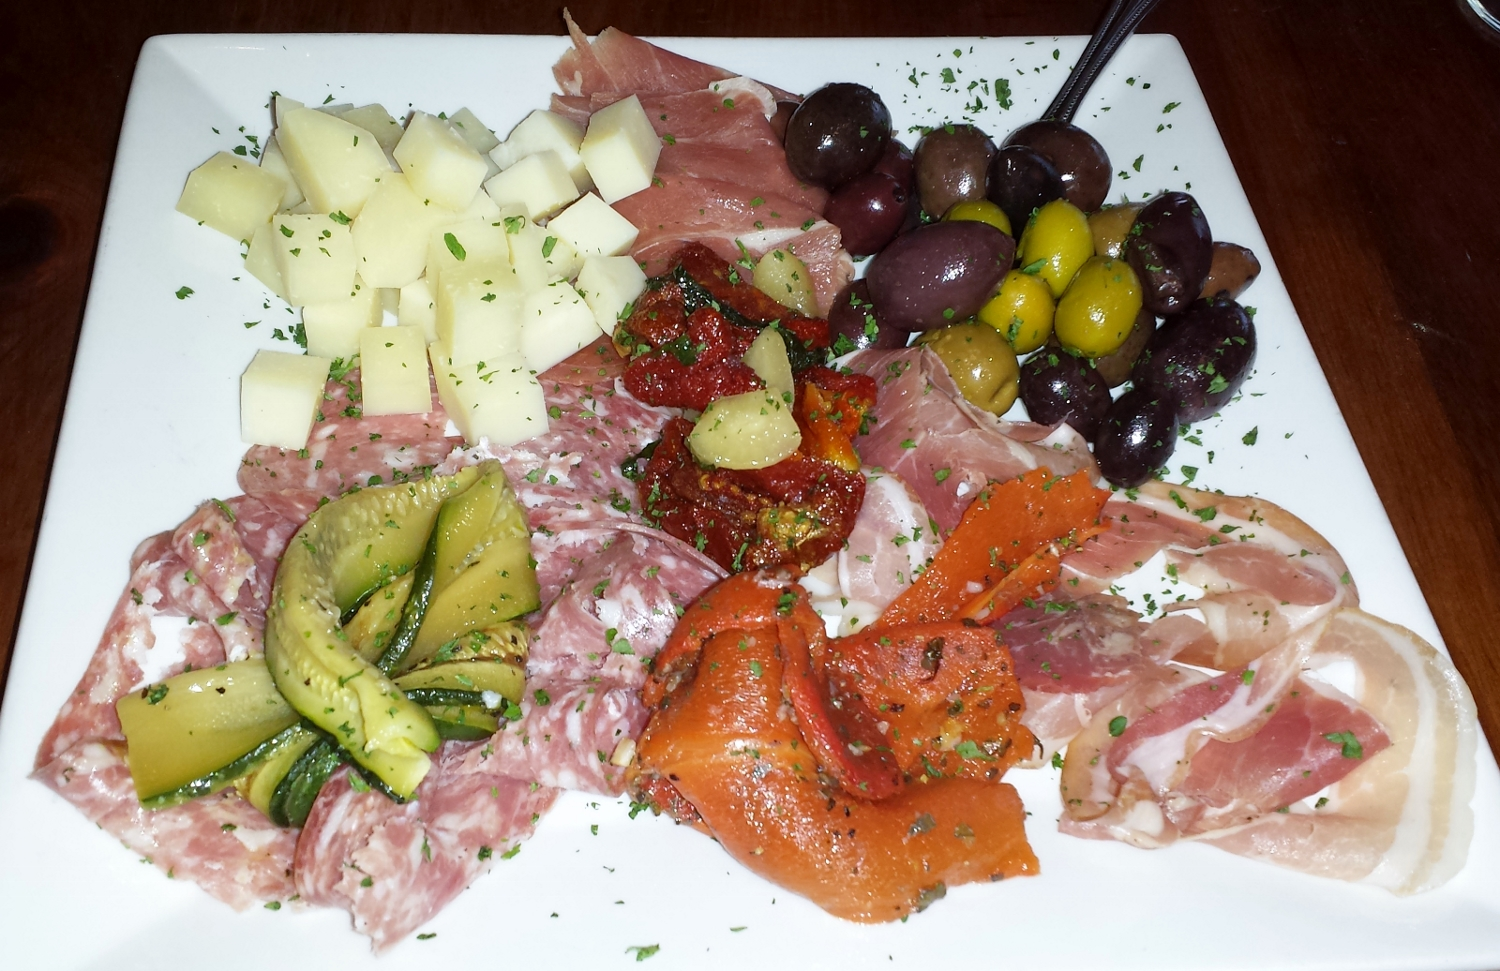 Antipasto Della Casa: assorted Italian salumi, Italian cheese, roasted red peppers, sun dried tomatoes, and olives.